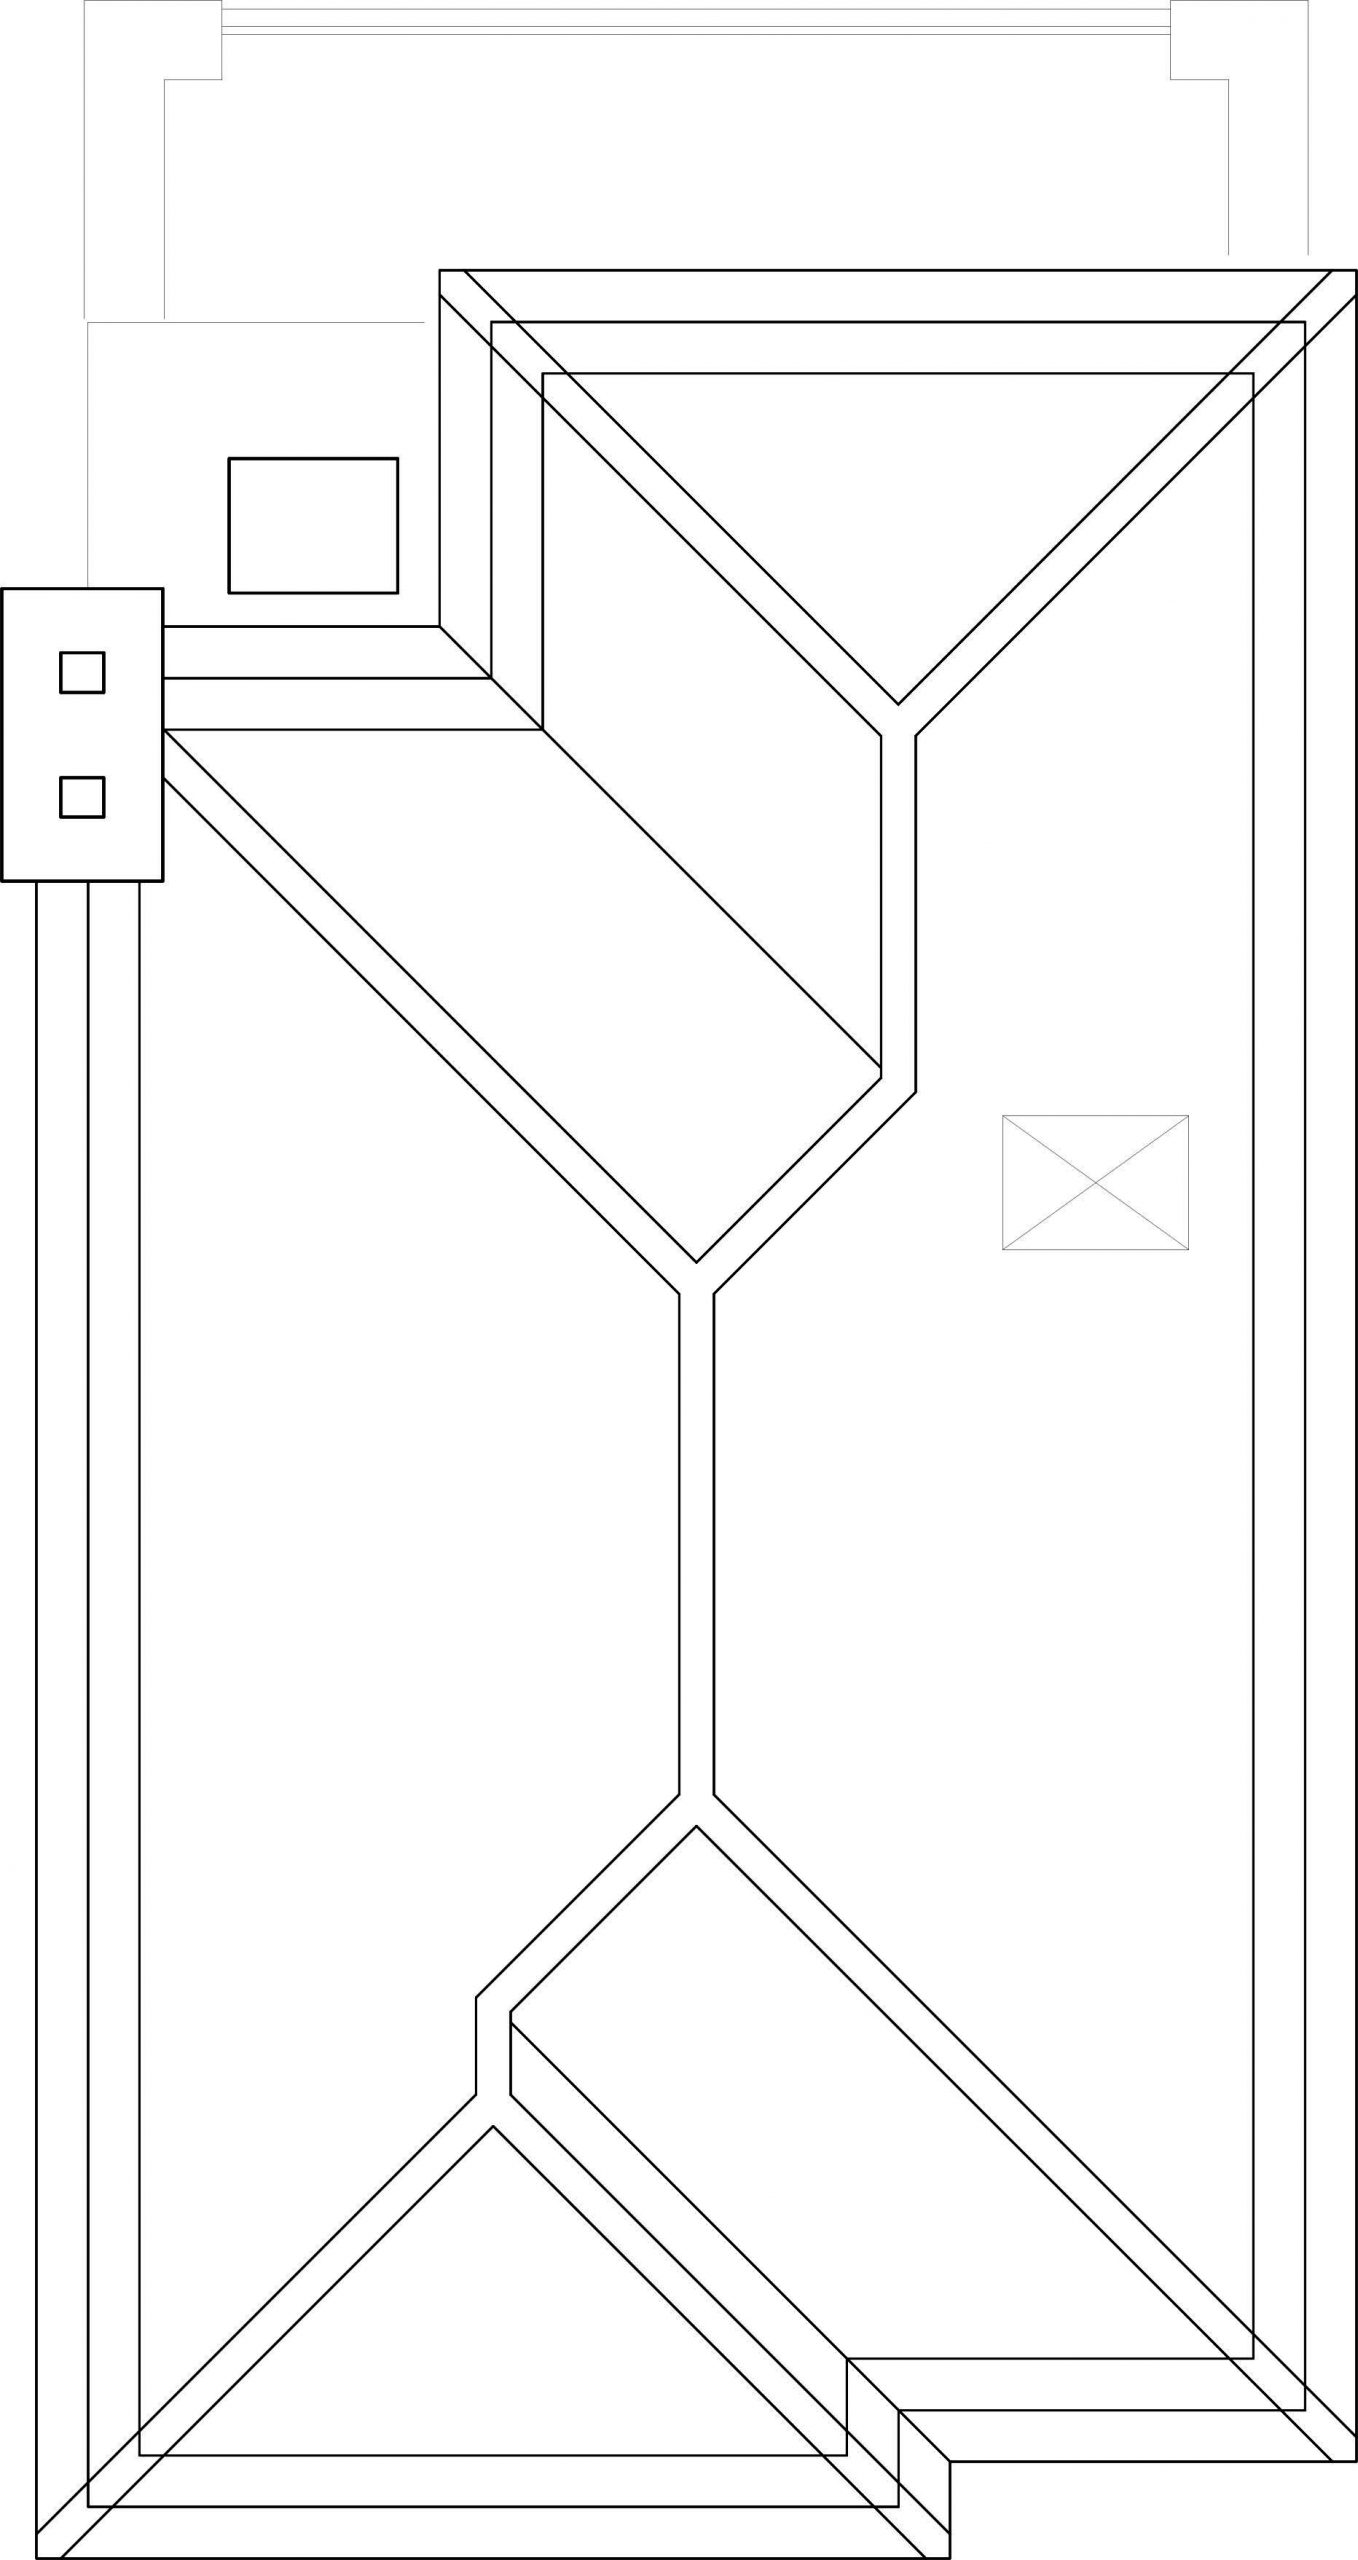 http://amirez.co.uk/wp-content/uploads/2017/06/170_Munster-Rd-Clean-Layout-Roof.jpg